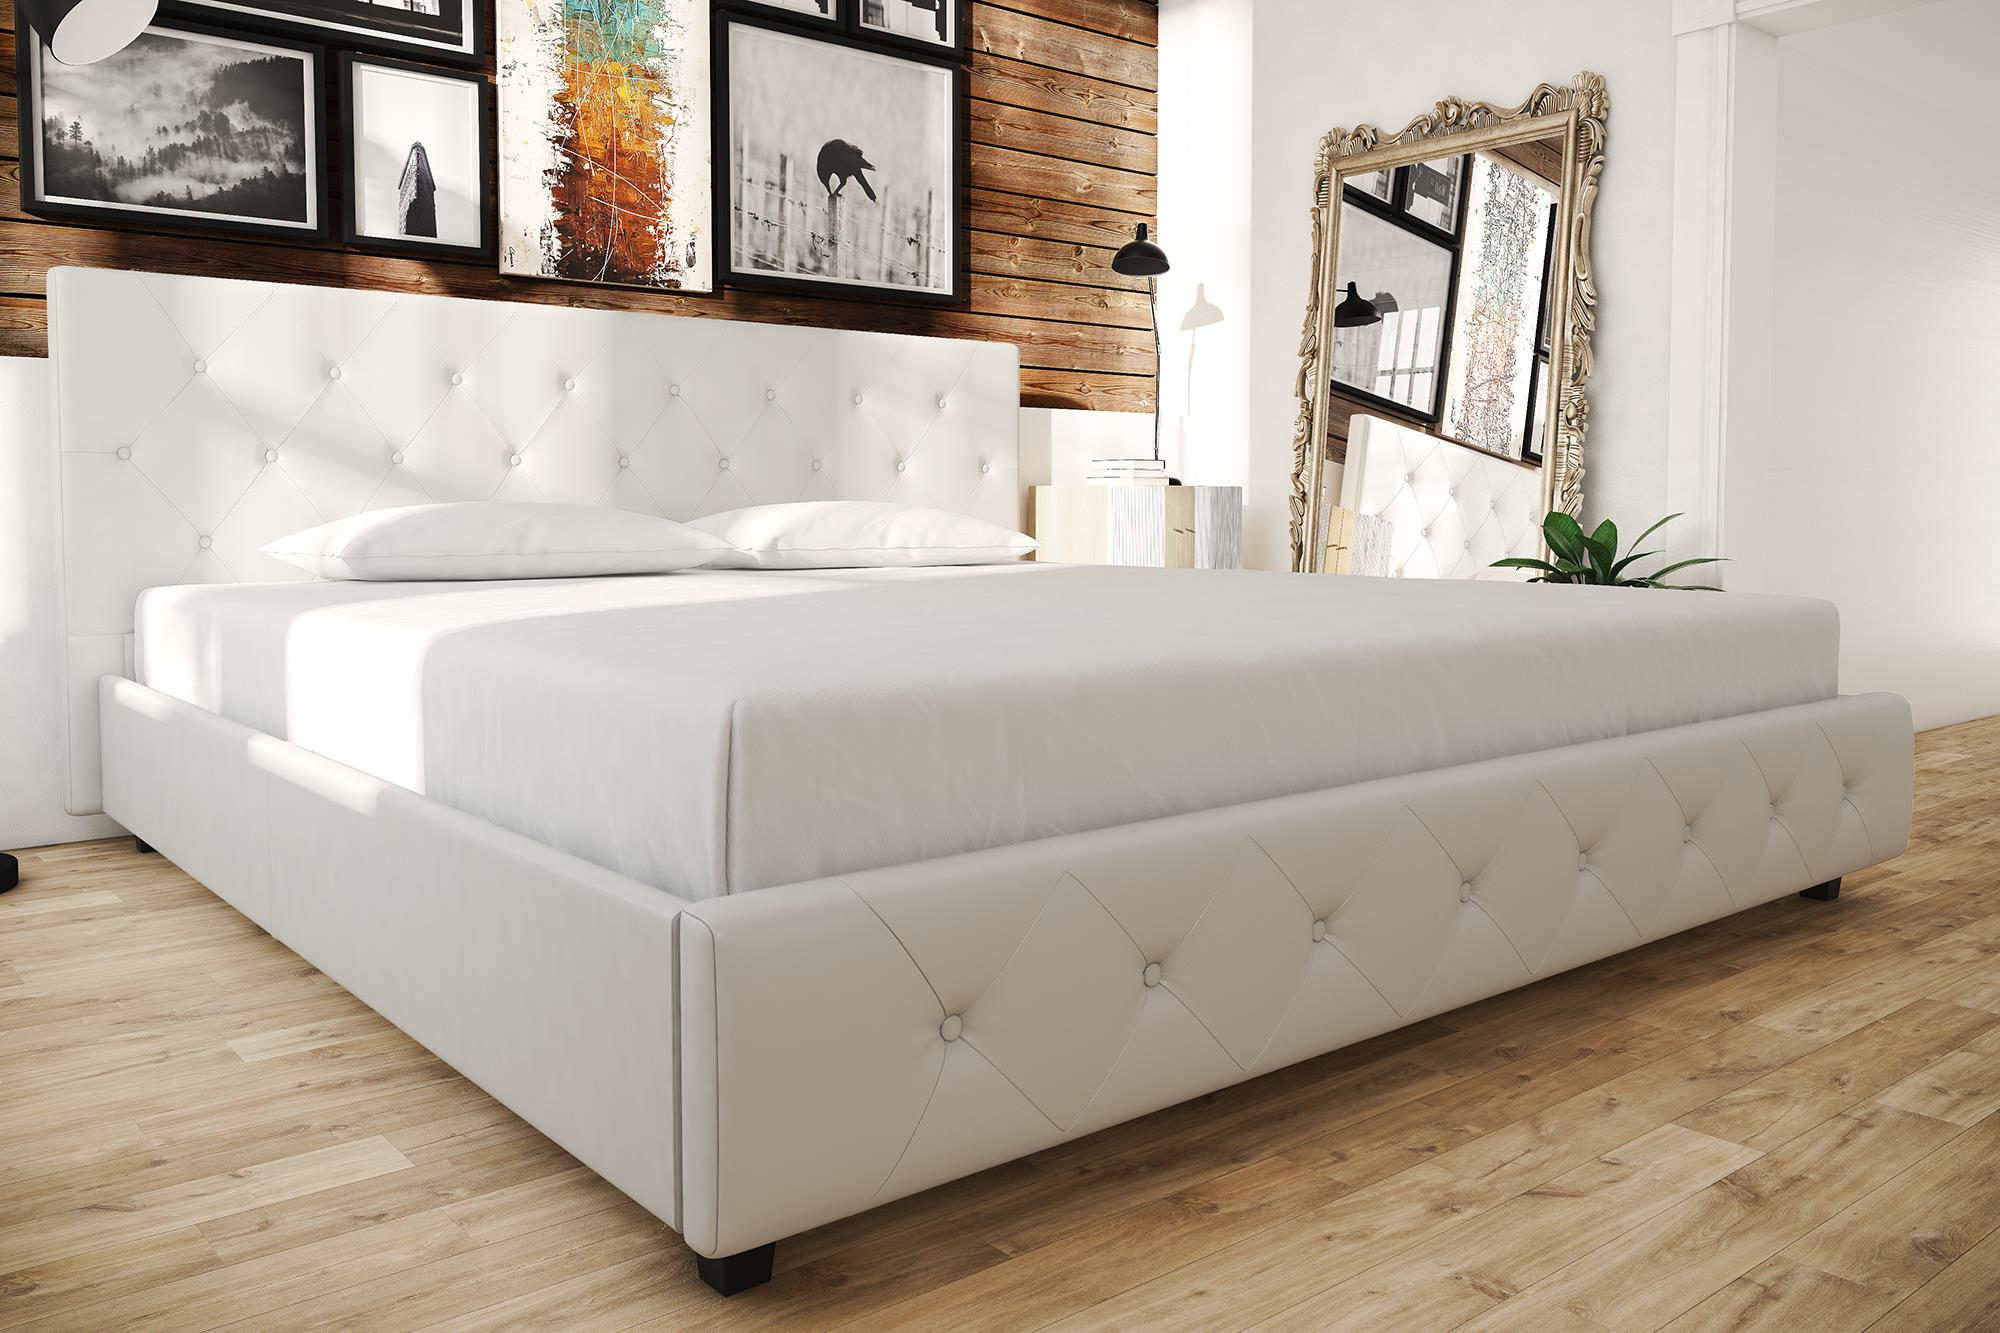 Contemporary White Leather King Size Bed Frame W Tufted